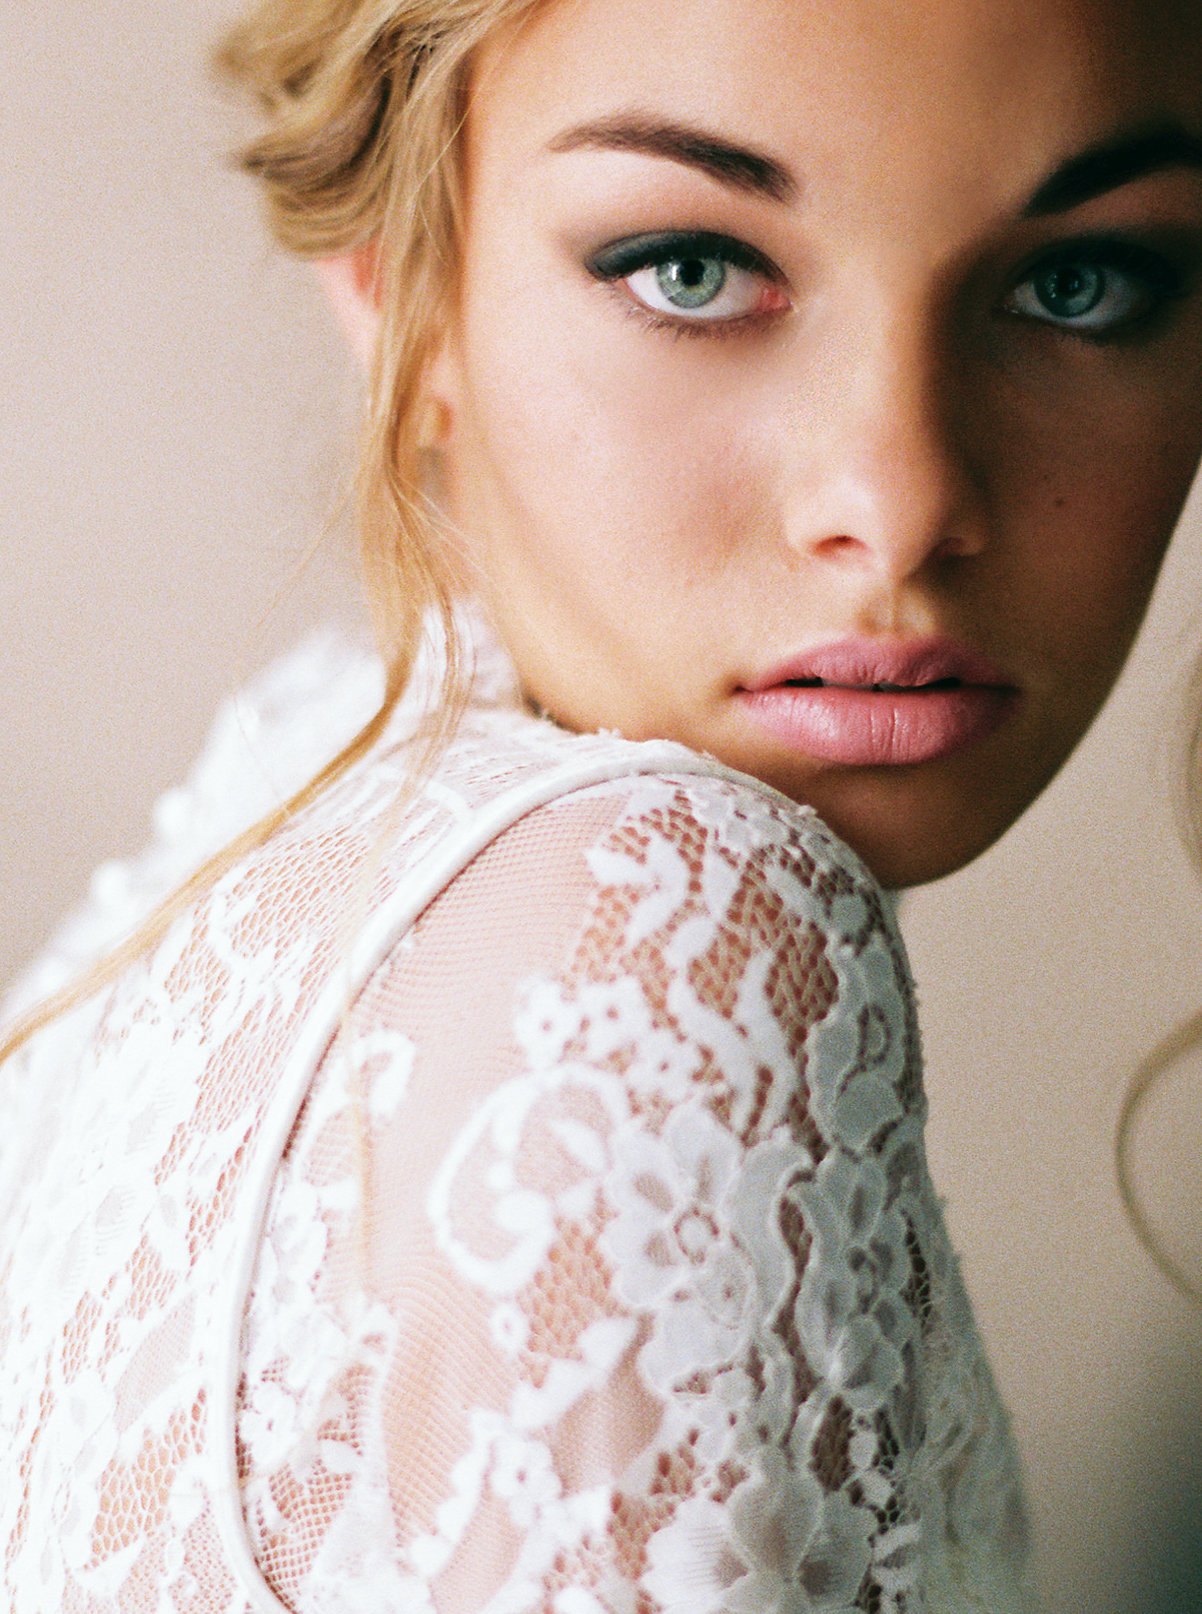 perry_vaile_contax645_portra_400_sp3000_perrysvision_pvtakeover_bhldn_weddings_makeup_for_your_day_photovisionprints.jpg